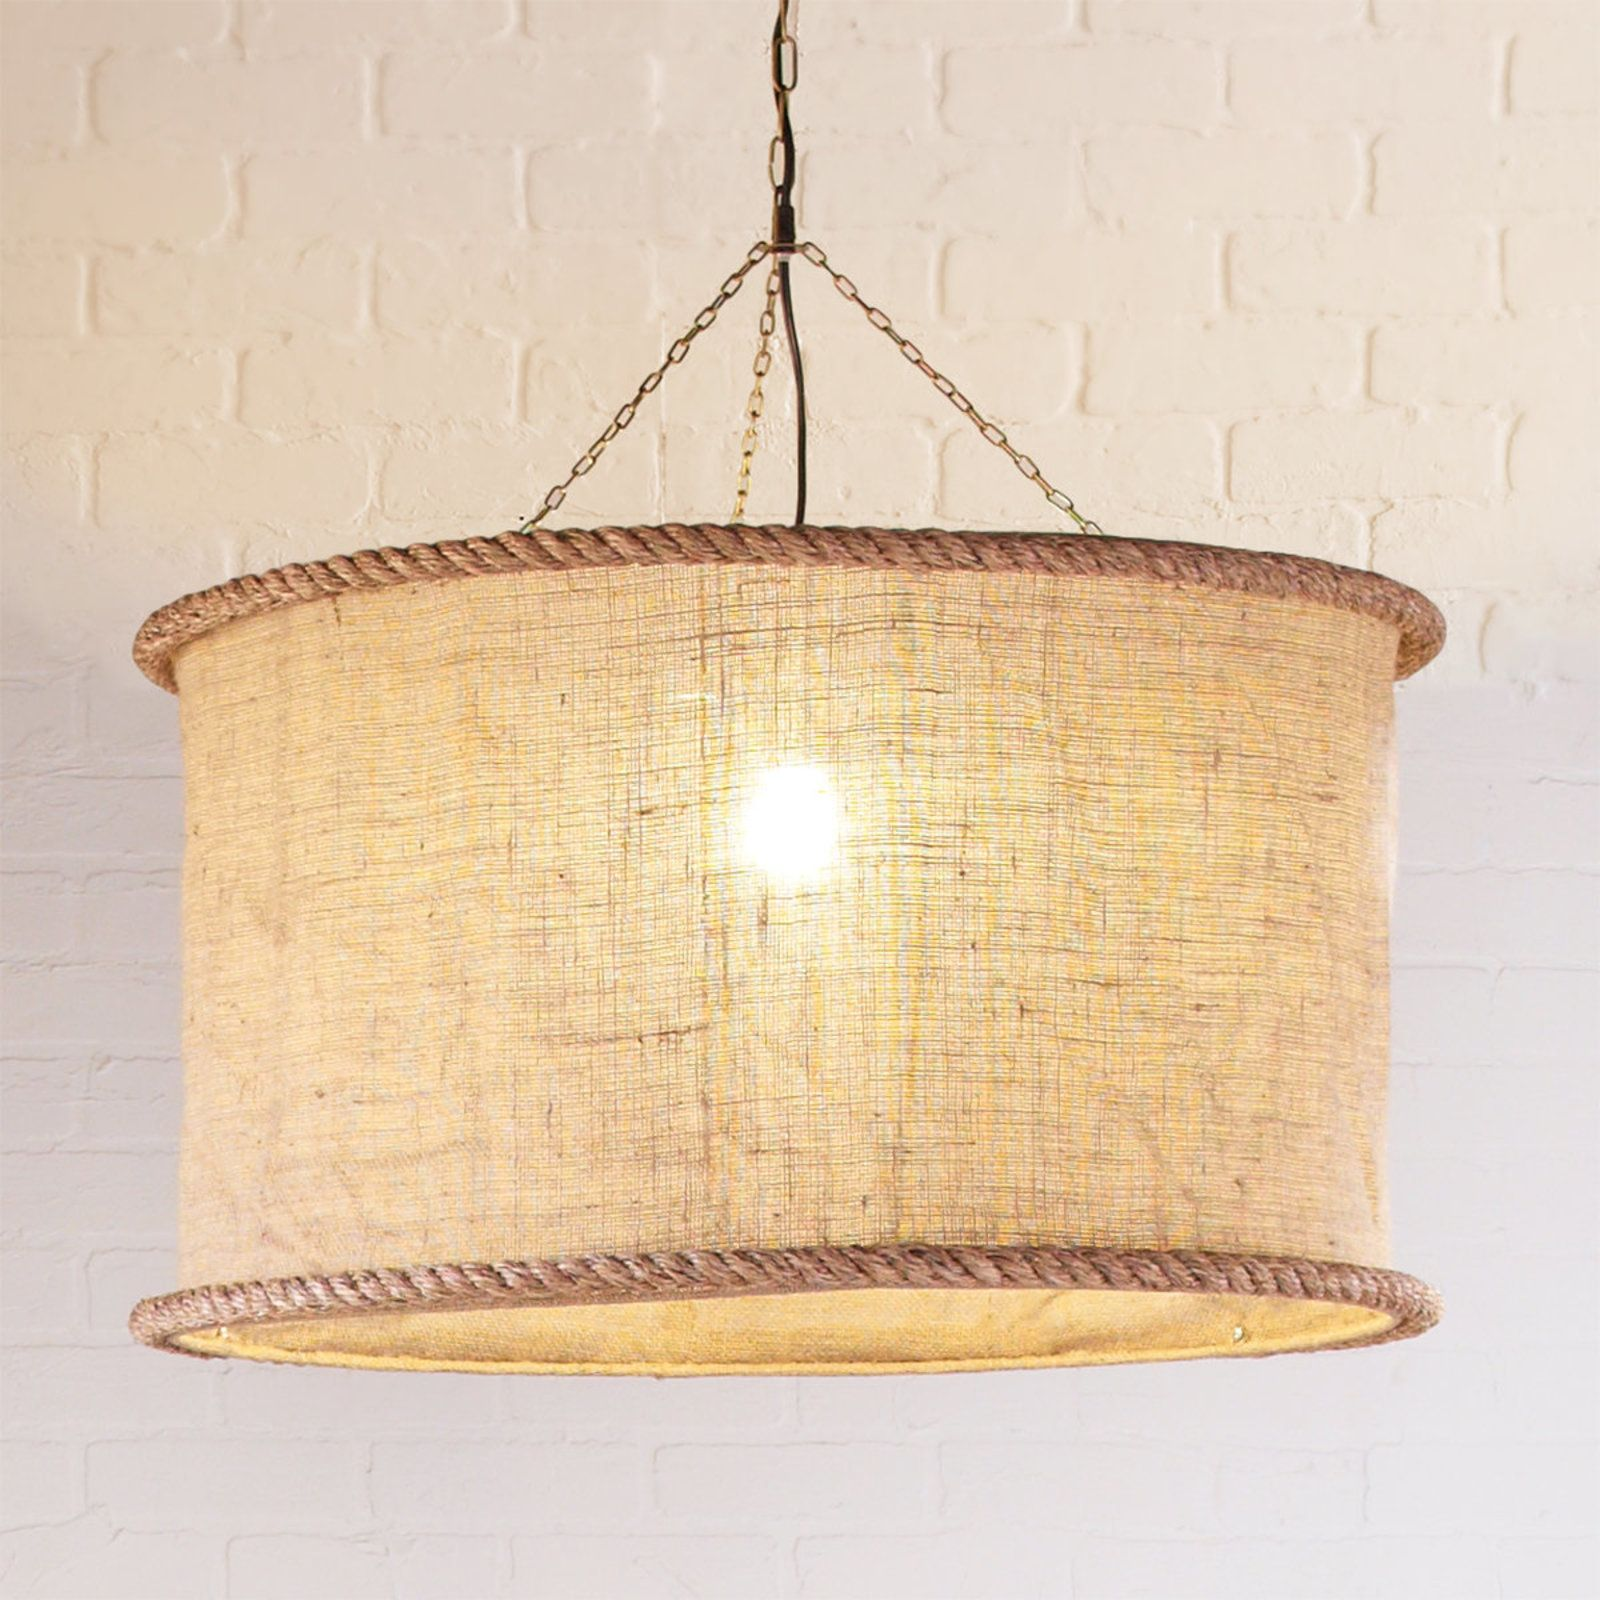 Oversized Burlap Drum Pendant Natural Burlap Drum Pendant